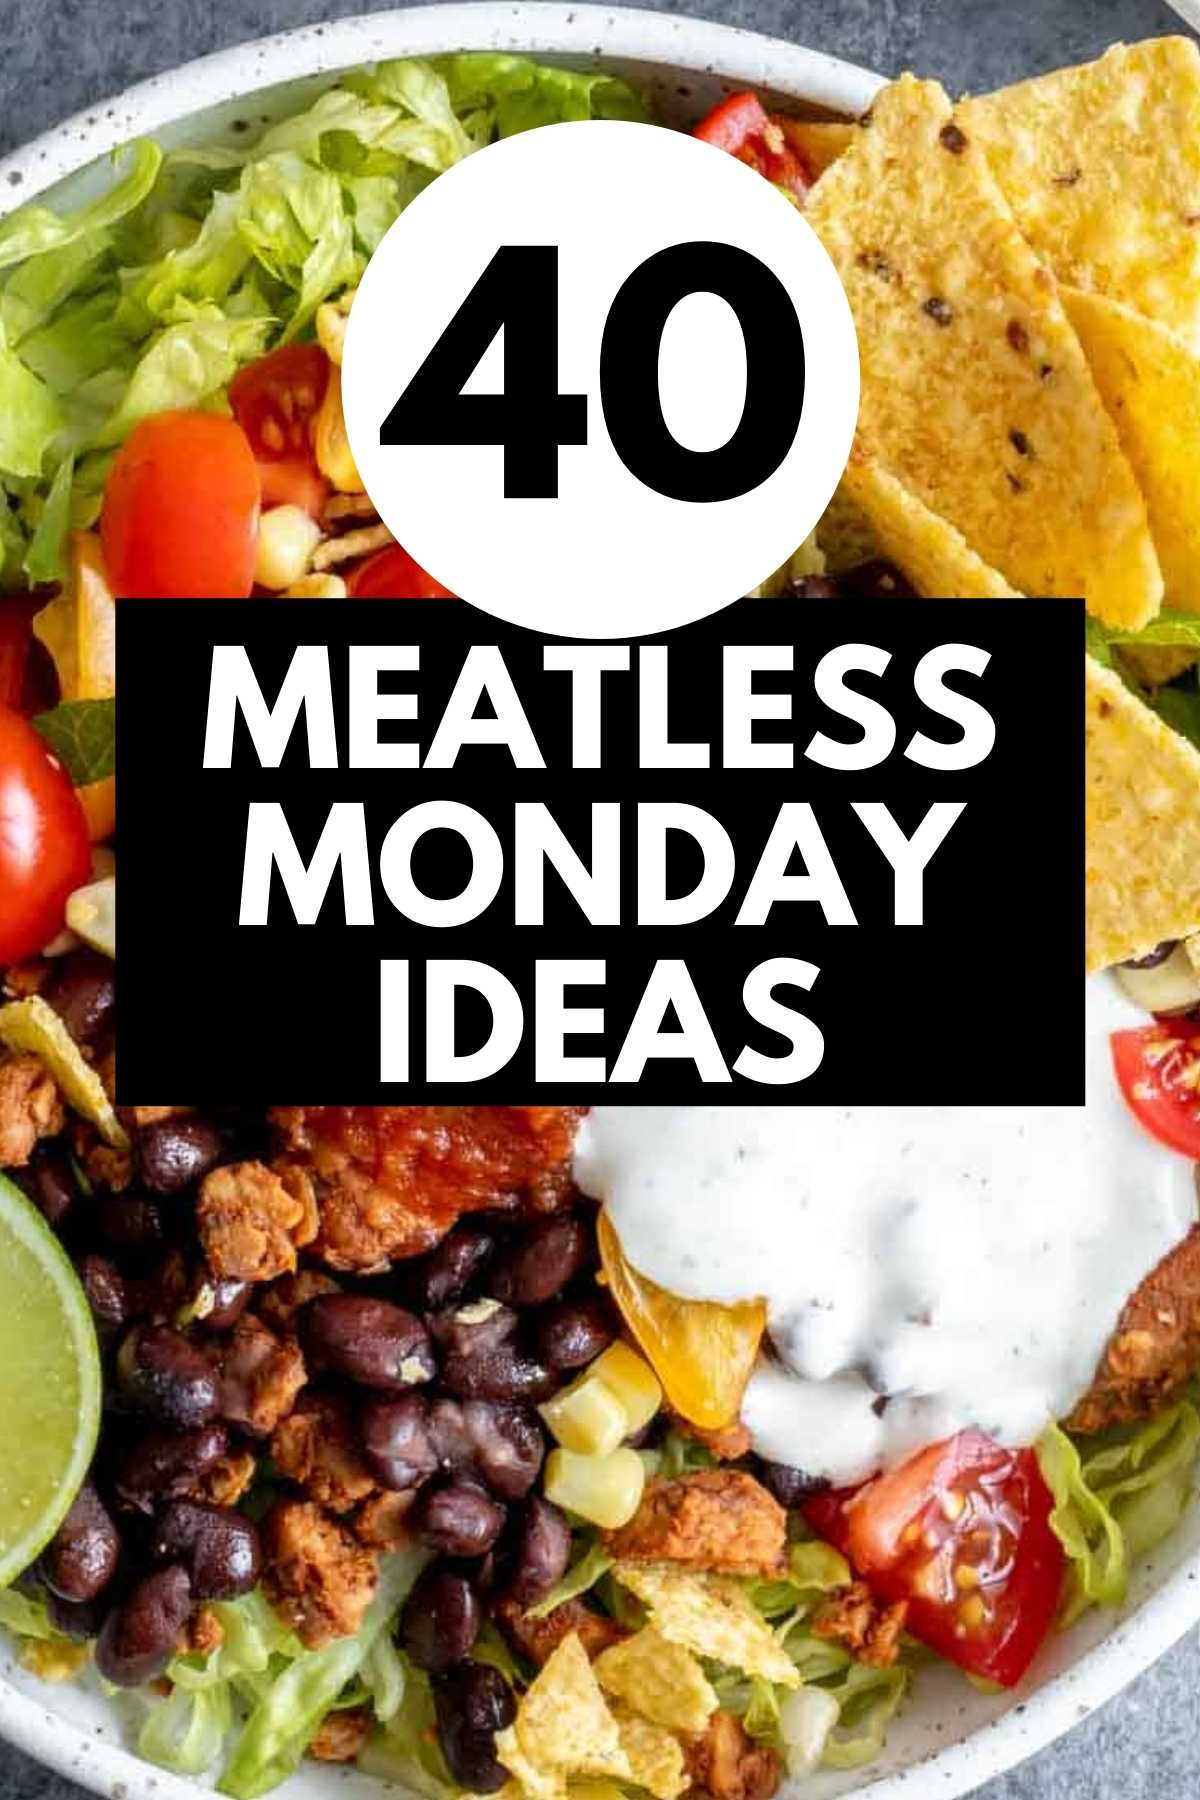 40 Meatless Monday ideas image graphic.